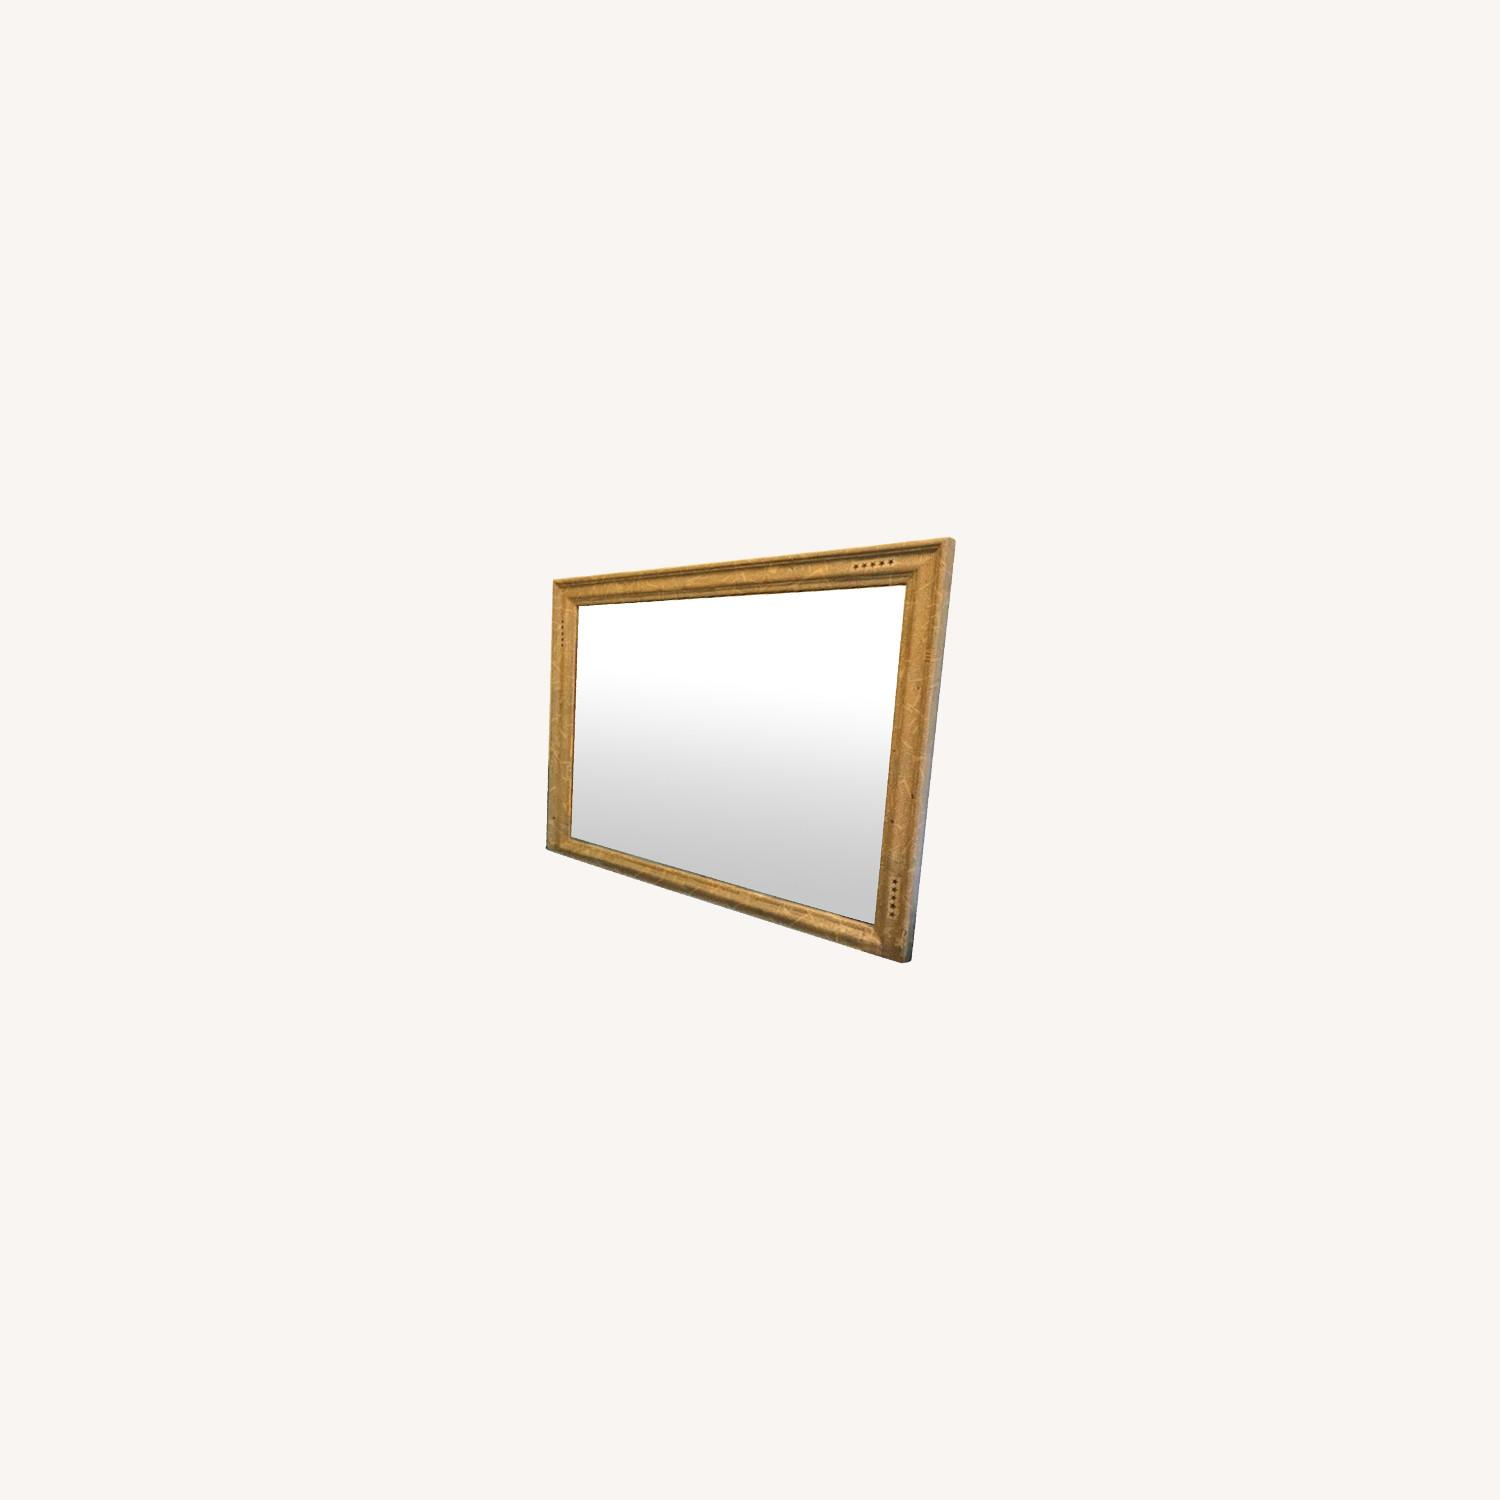 Mirror with Antique-style Frame - image-0